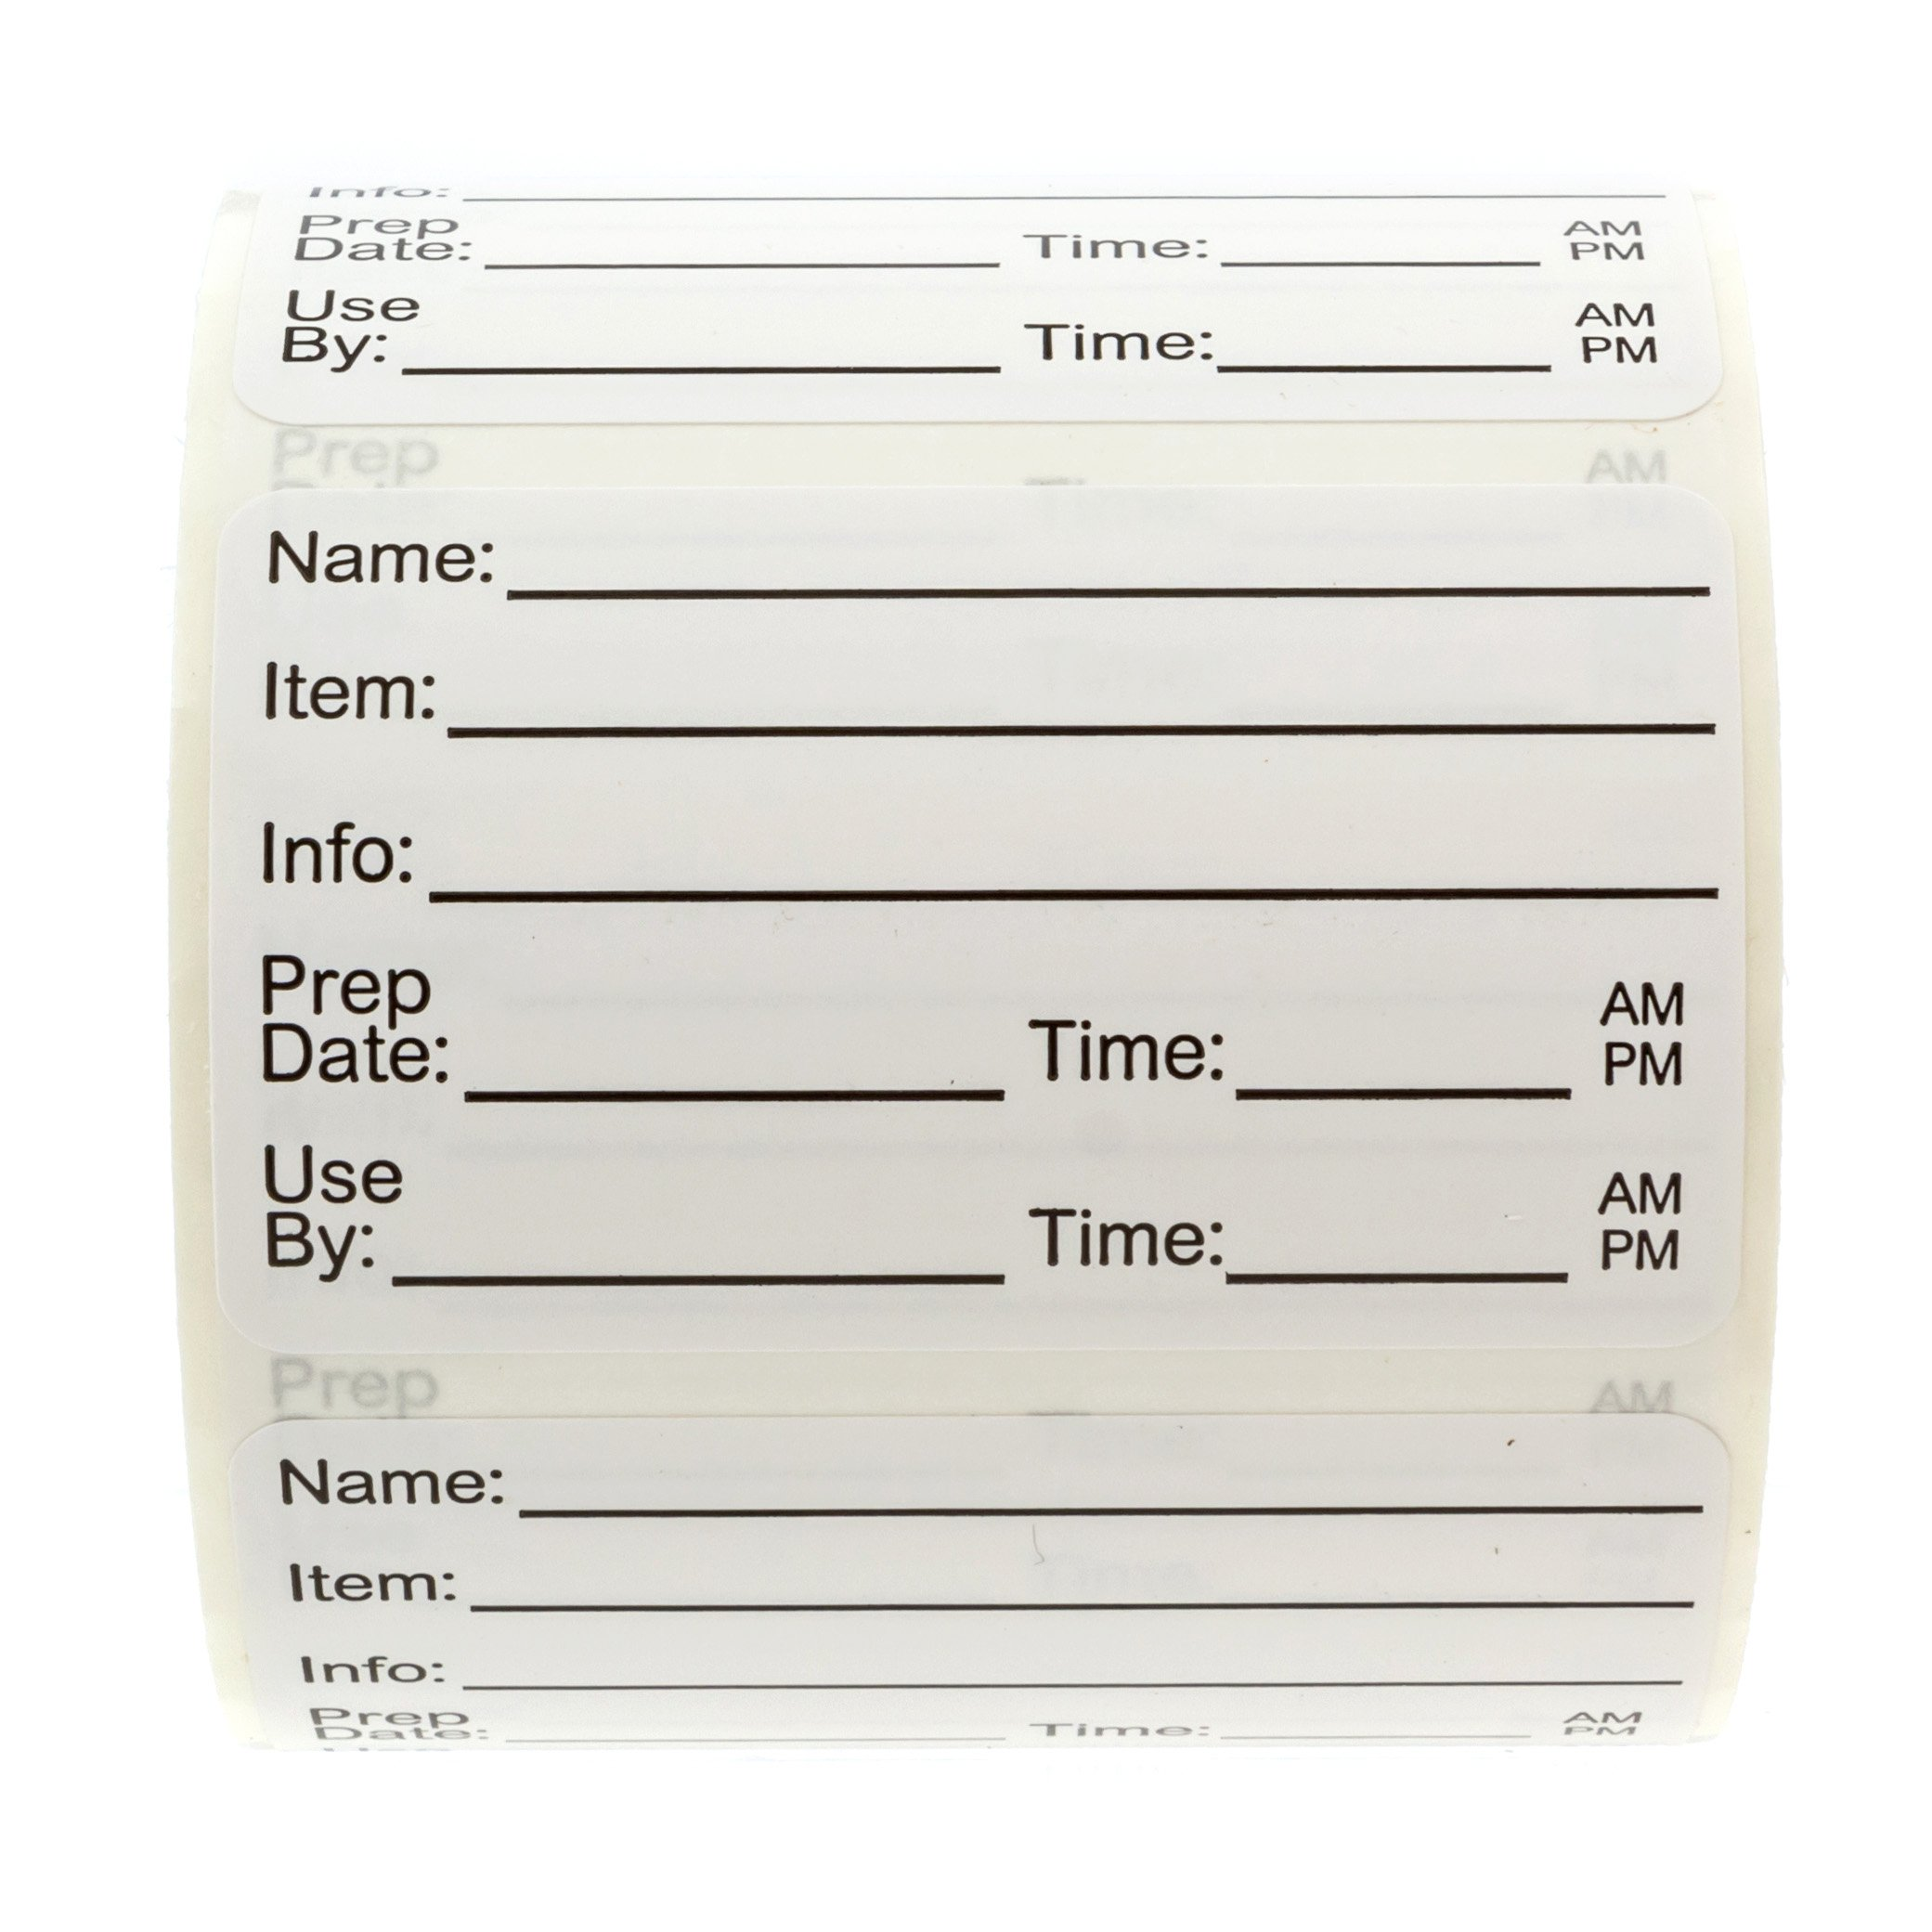 500 Food Prep Labels - Removable Stickers for Meal prep, Leftover Labeling, Food Container Labeling, Restaurant Quality by Sblabels (Image #6)